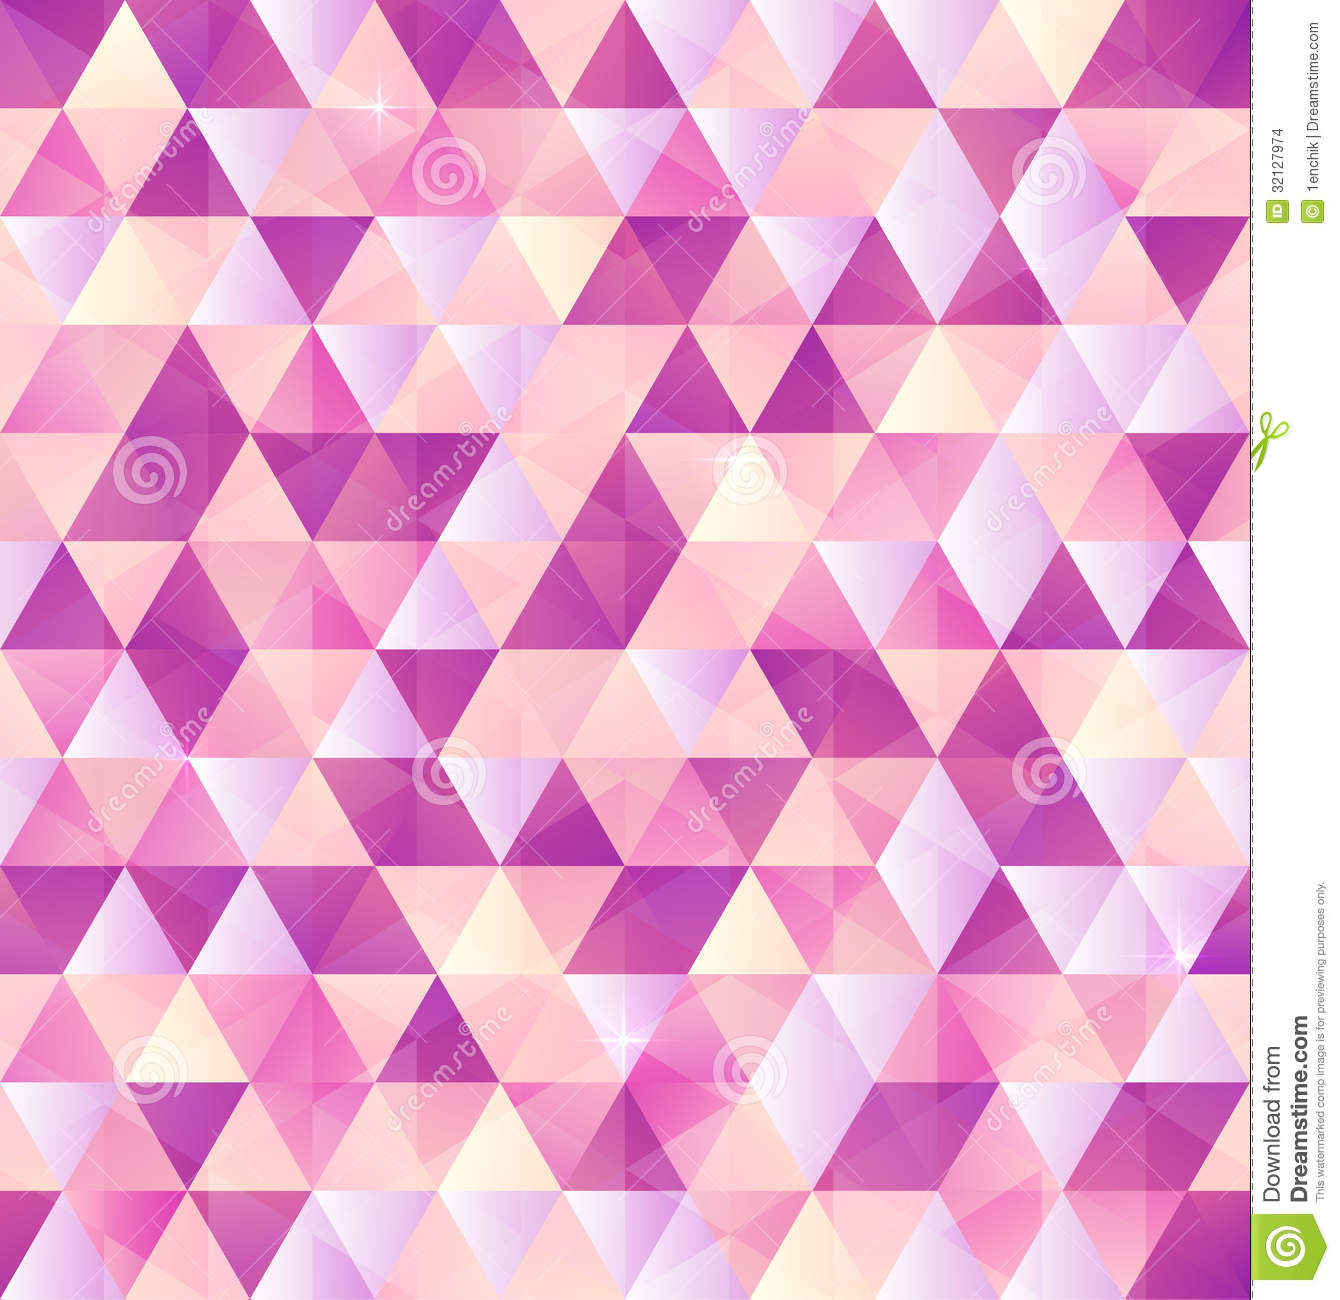 Cute Tribal Patterns Wallpaper Pink Vector Abstract Triangle Vintage Background Stock